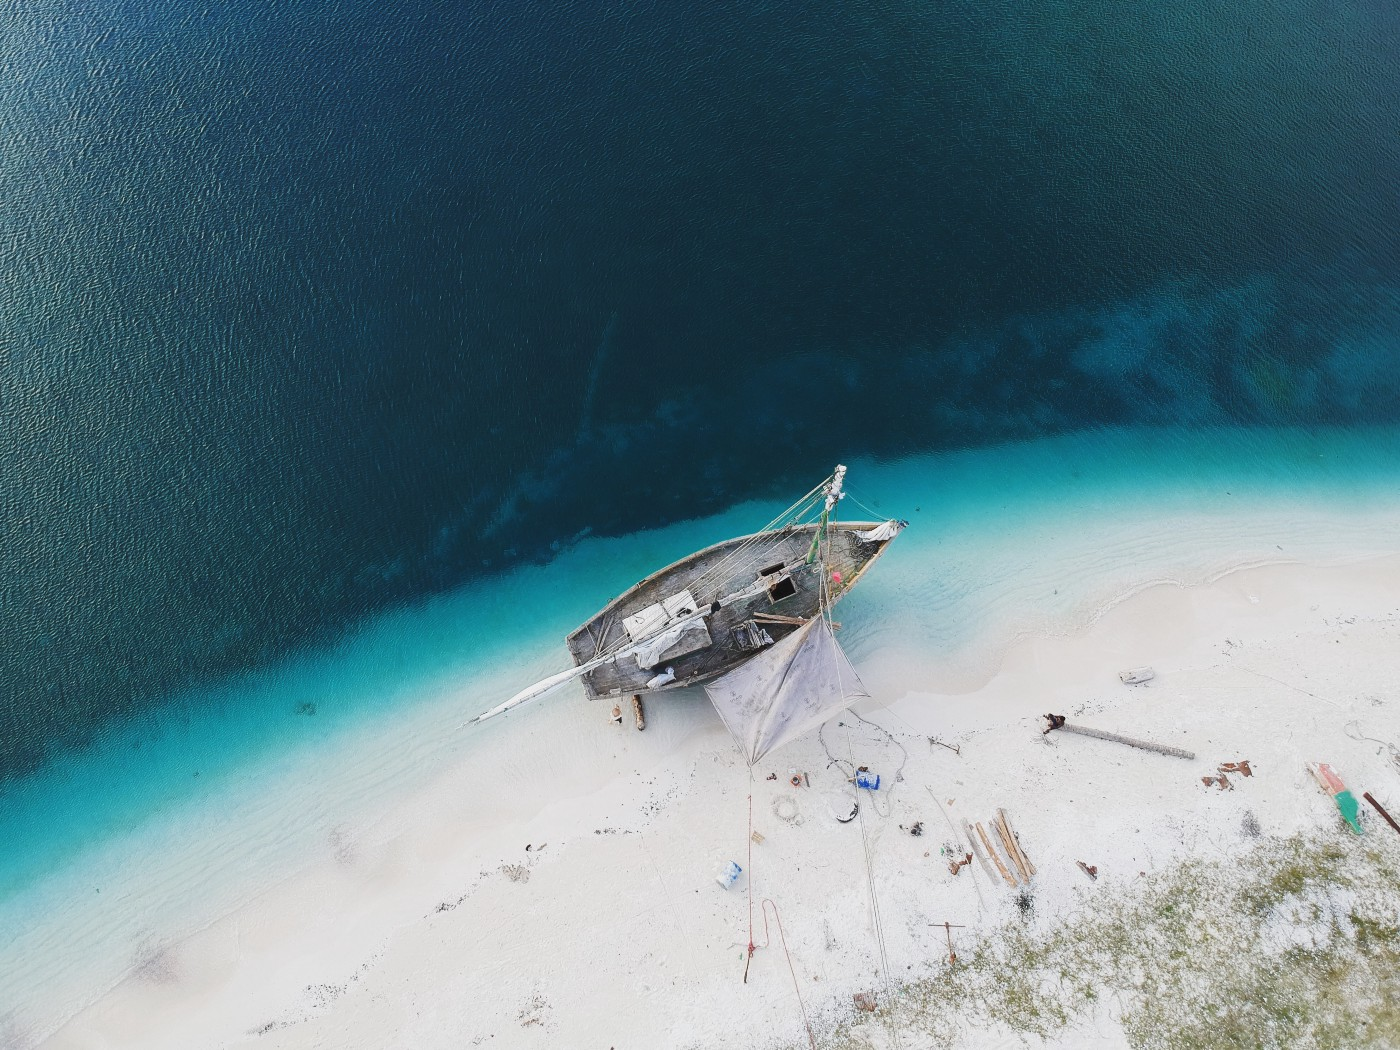 Aerial photo of a ship on a beach being worked on.